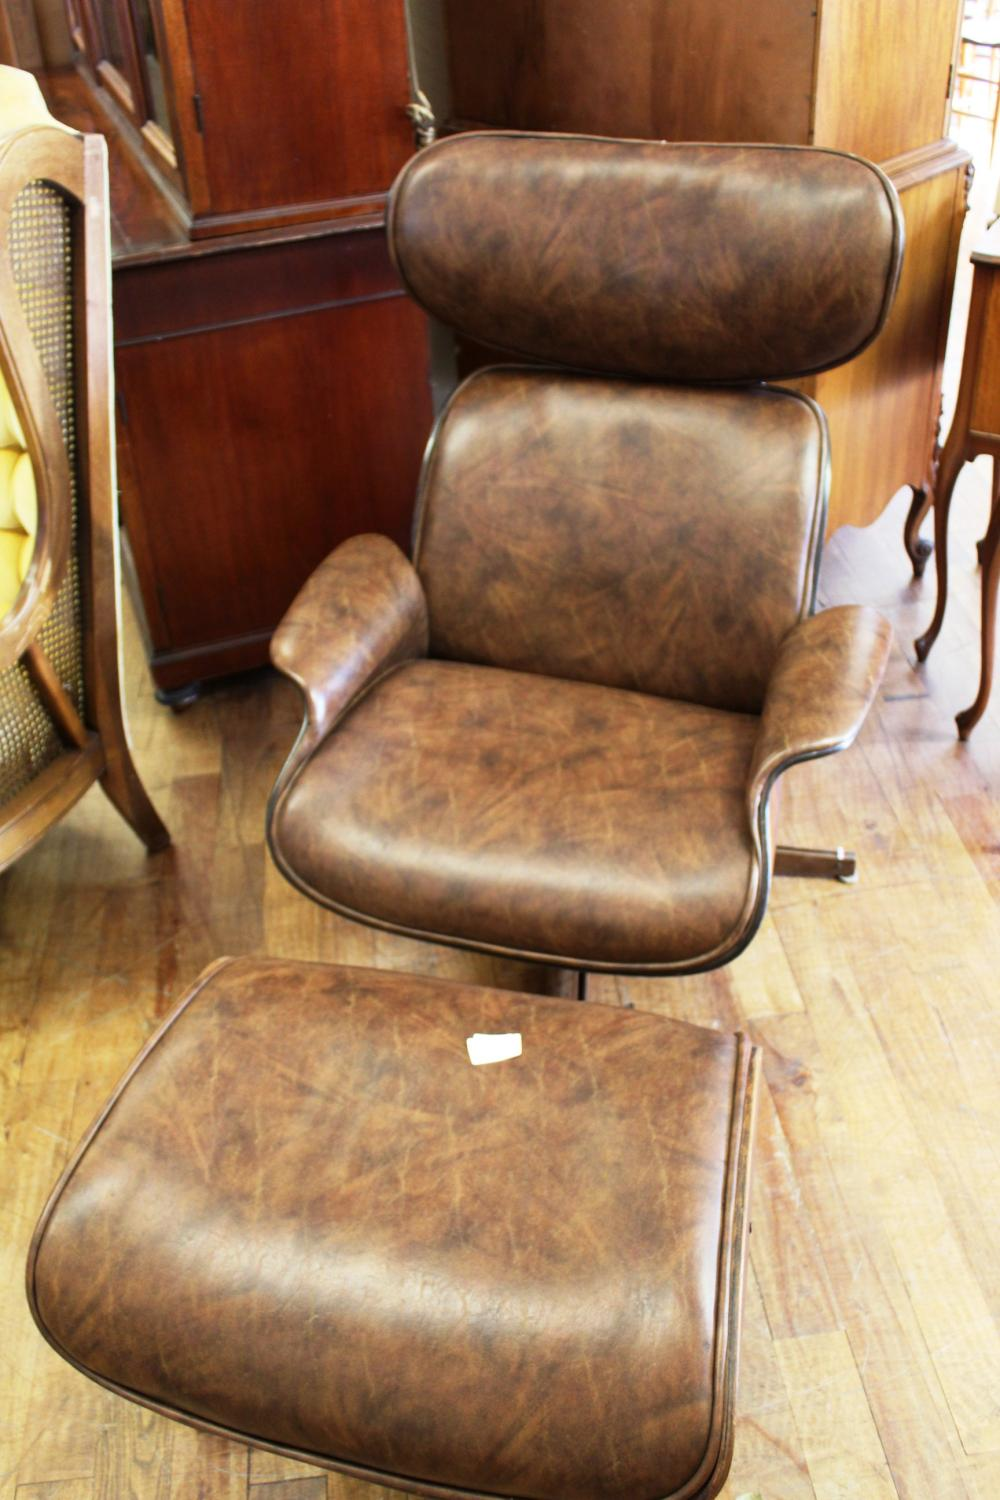 Groovy Faux Leather Eames Style Chair And Ottoman Squirreltailoven Fun Painted Chair Ideas Images Squirreltailovenorg